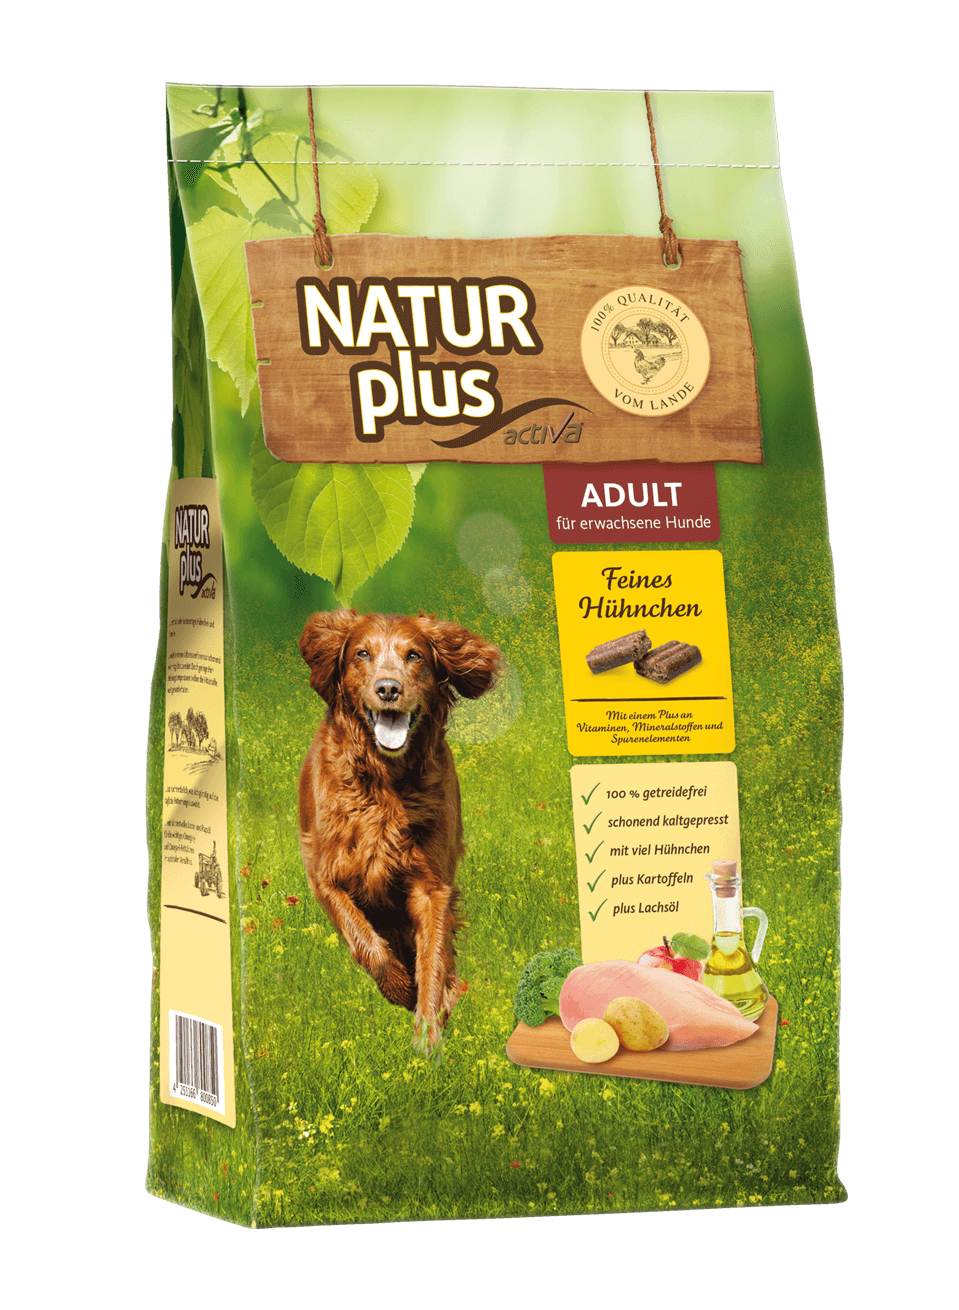 Natur plus Hund Adult